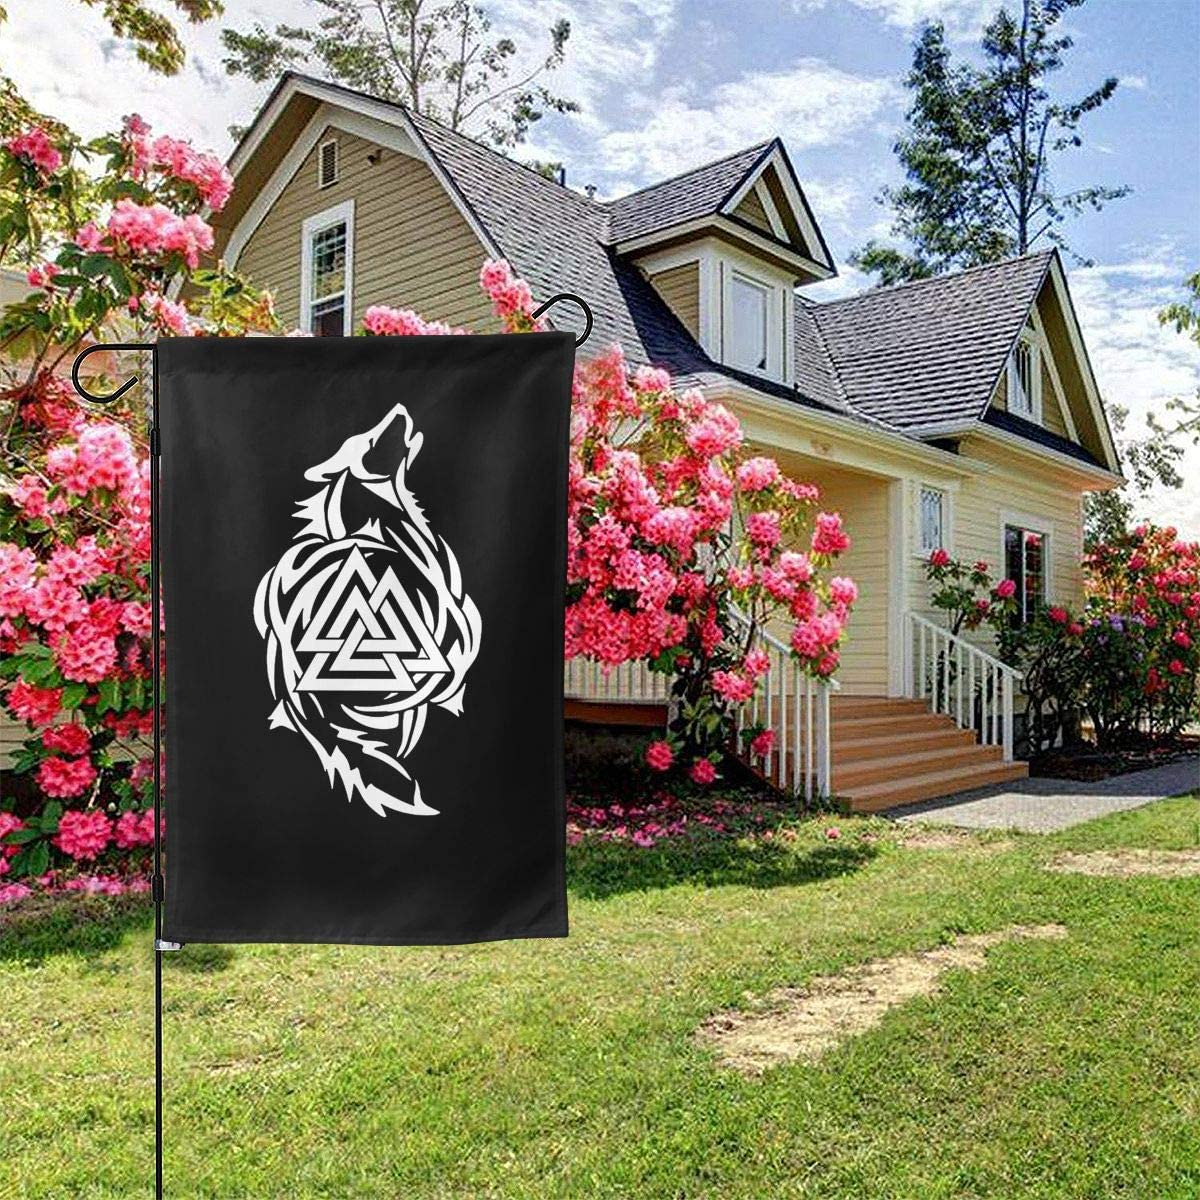 Odin Thor Viking Tribal Norse Wolf Valknut Sticker Garden Flag Welcome Banner for Patio Lawn Party Yard Home Outdoor Decor, On Both Sides, 12.5